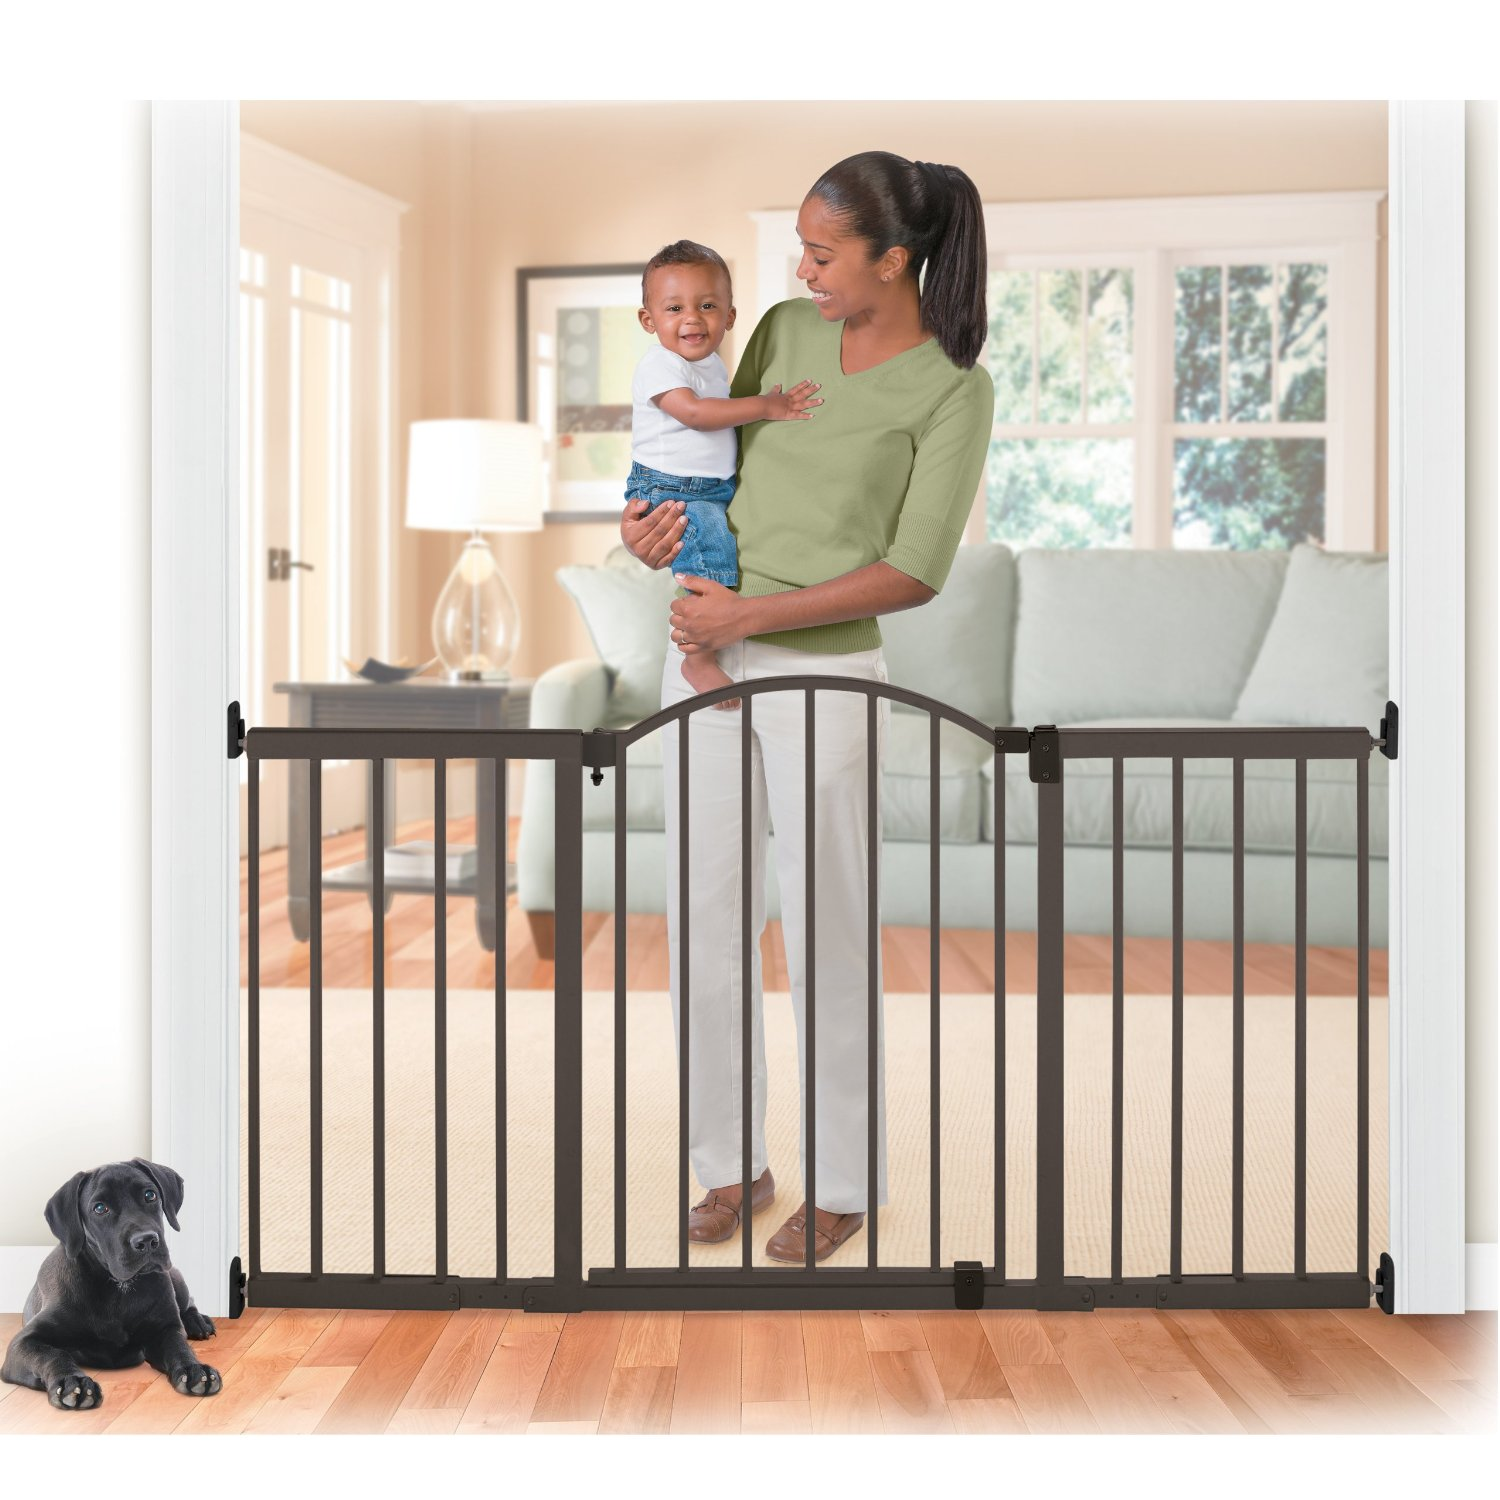 Breed Traphekje Extra Long Baby Gate Mamas Baby Store